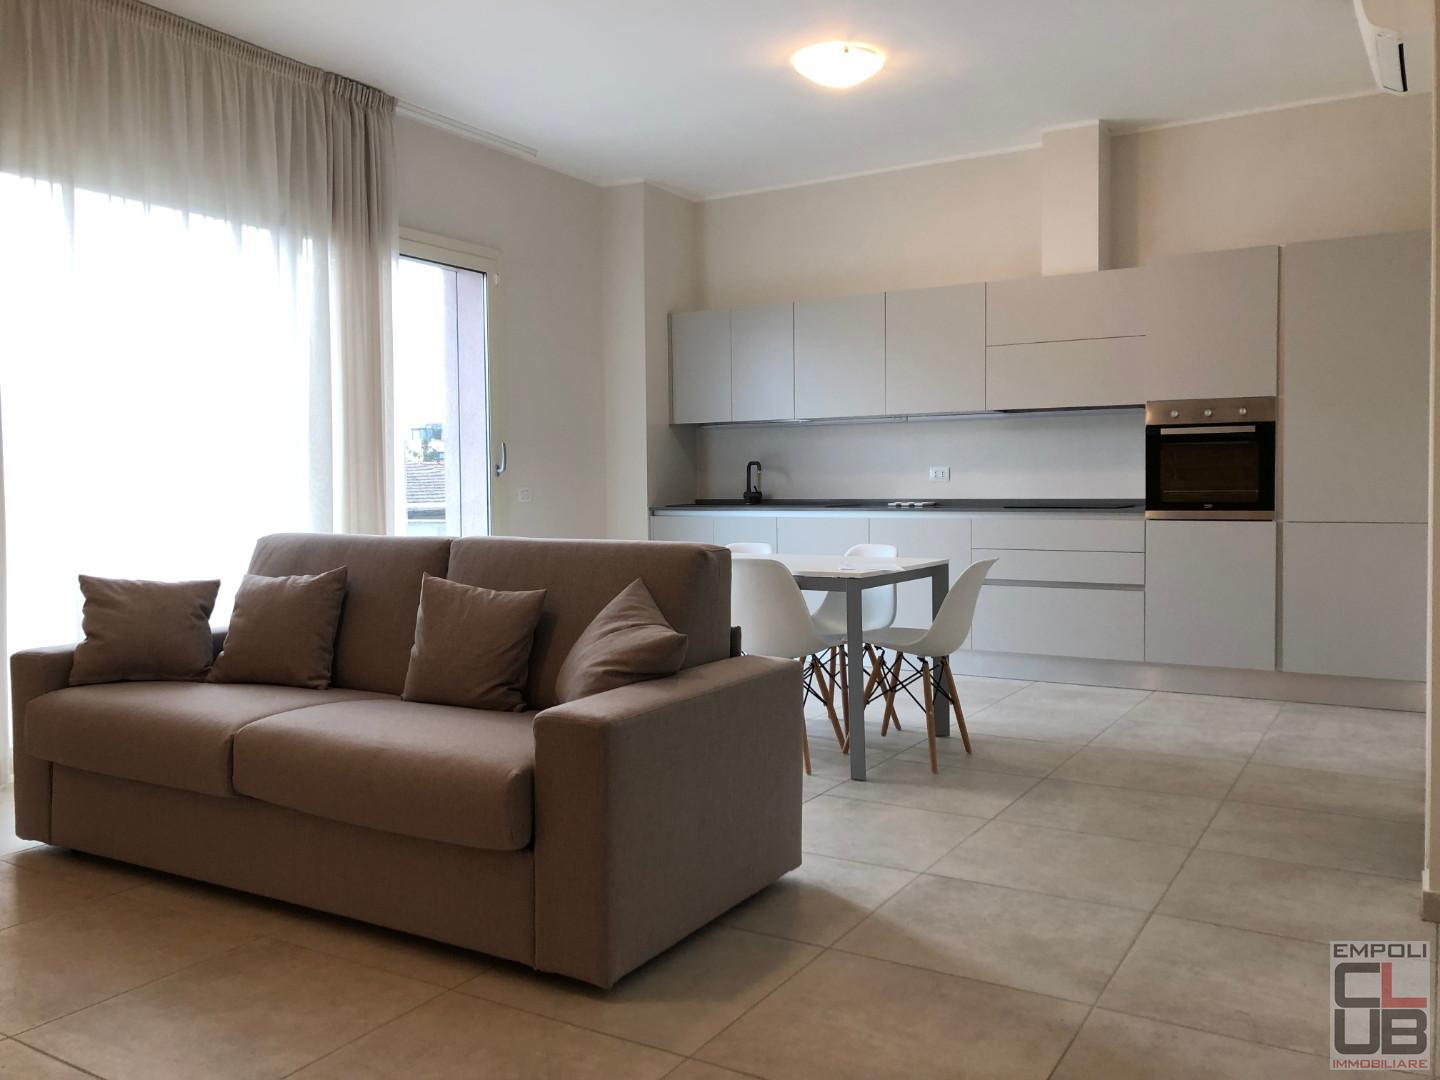 Attic for rent in Empoli (FI)